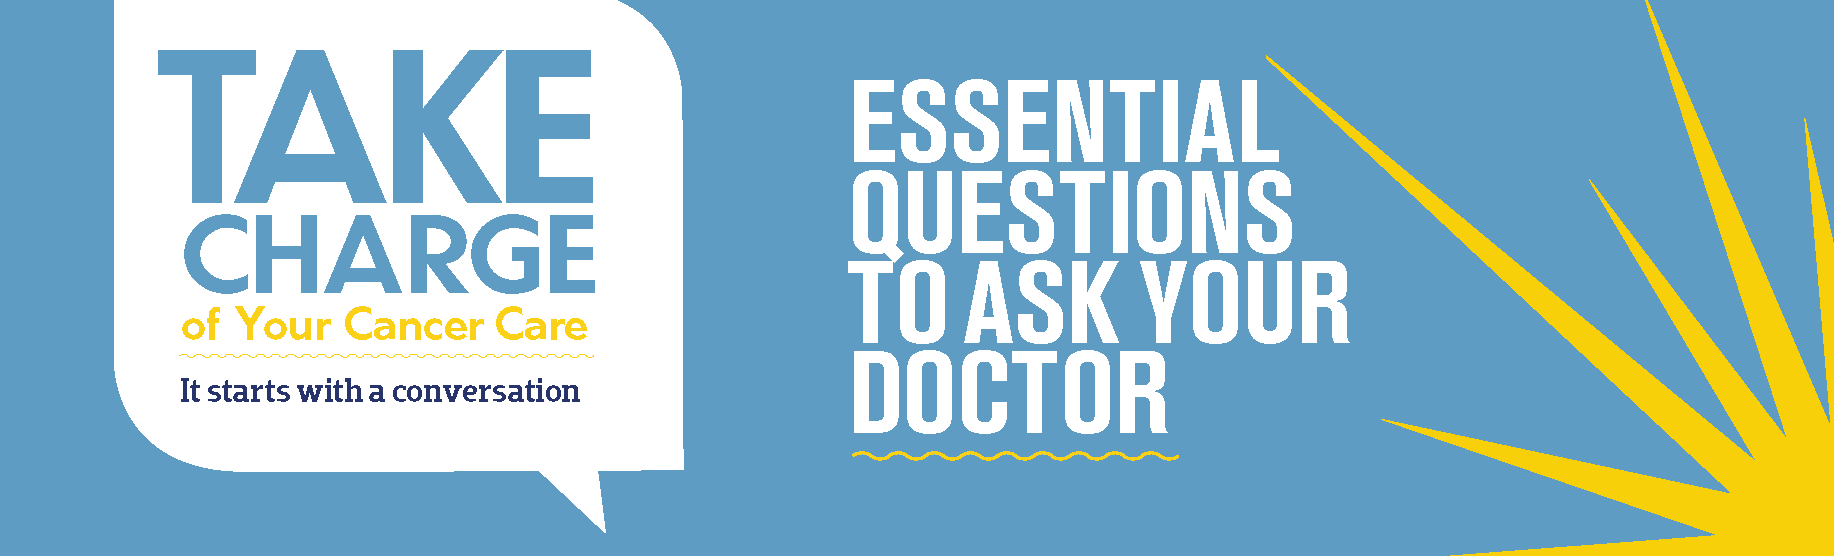 Take Charge: Essential Questions to Ask Your Doctor